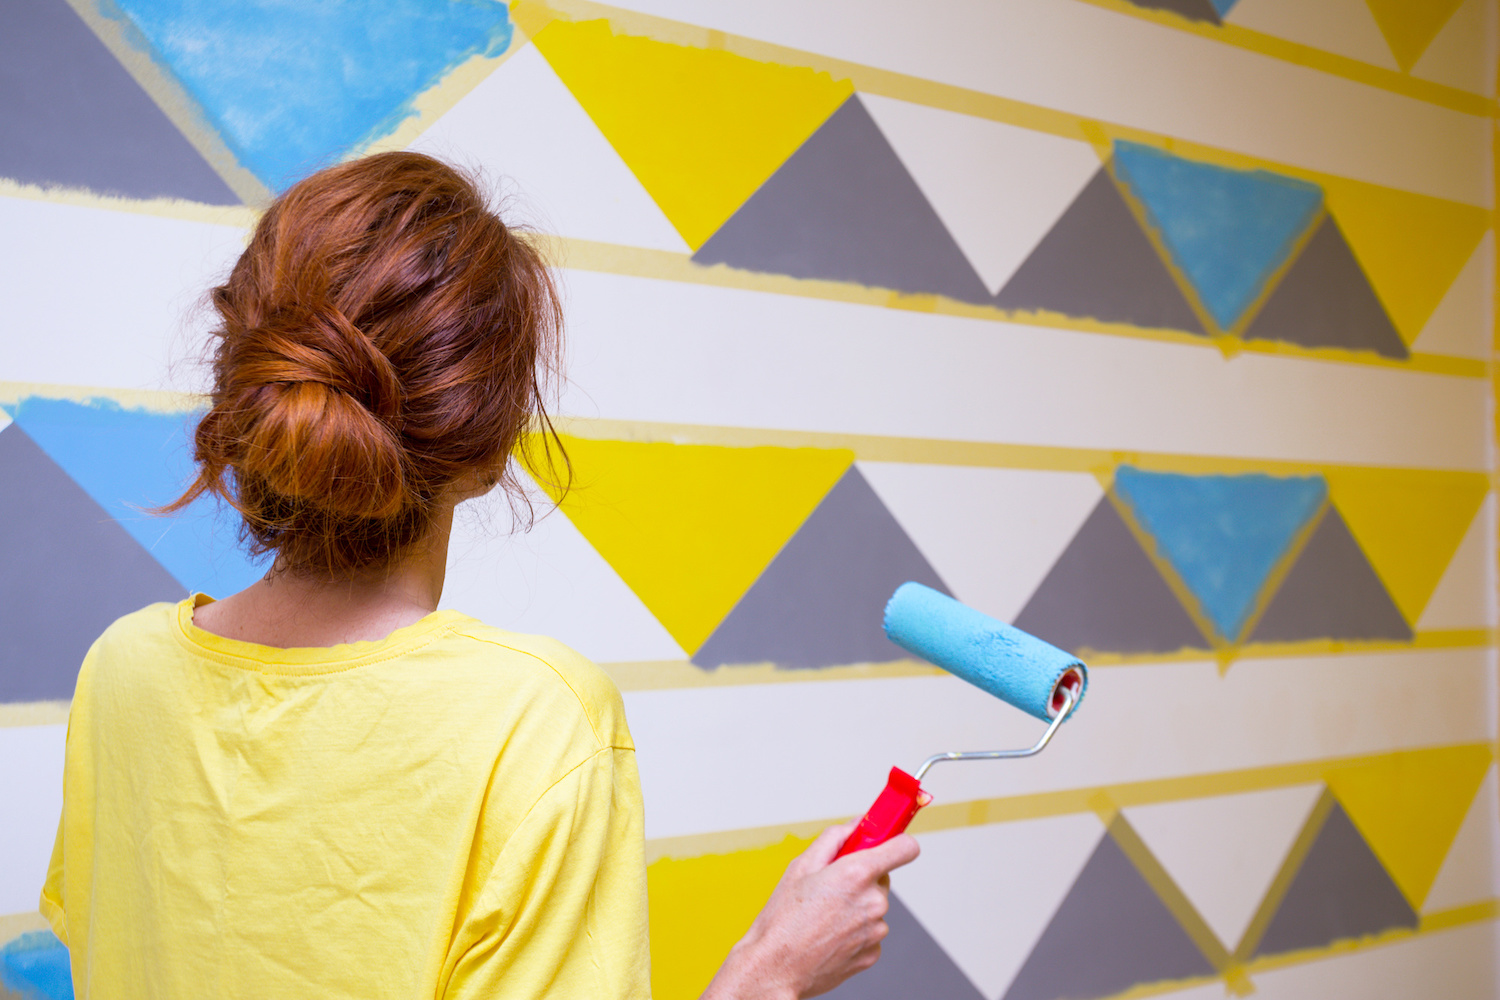 Interior Design. The girl paints the wall in geometric pattern.